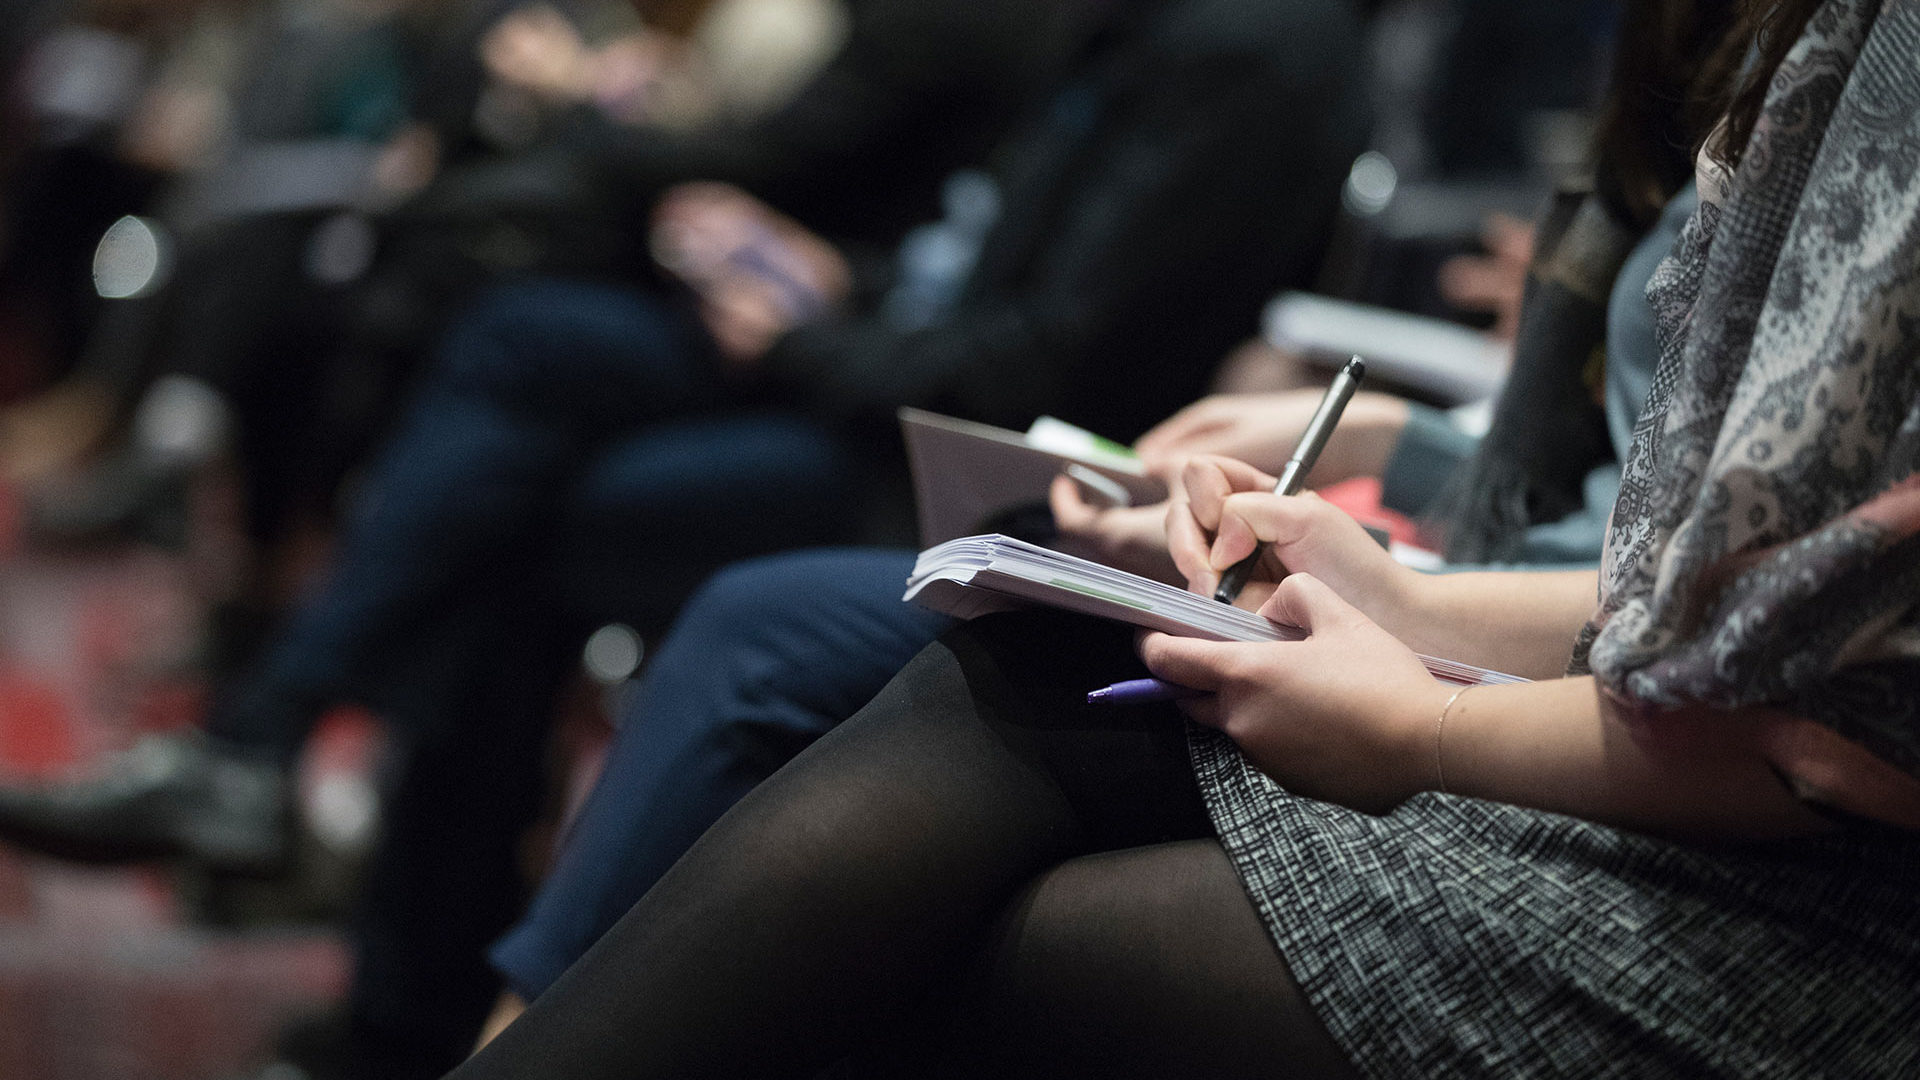 A group of people taking notes during a talk.